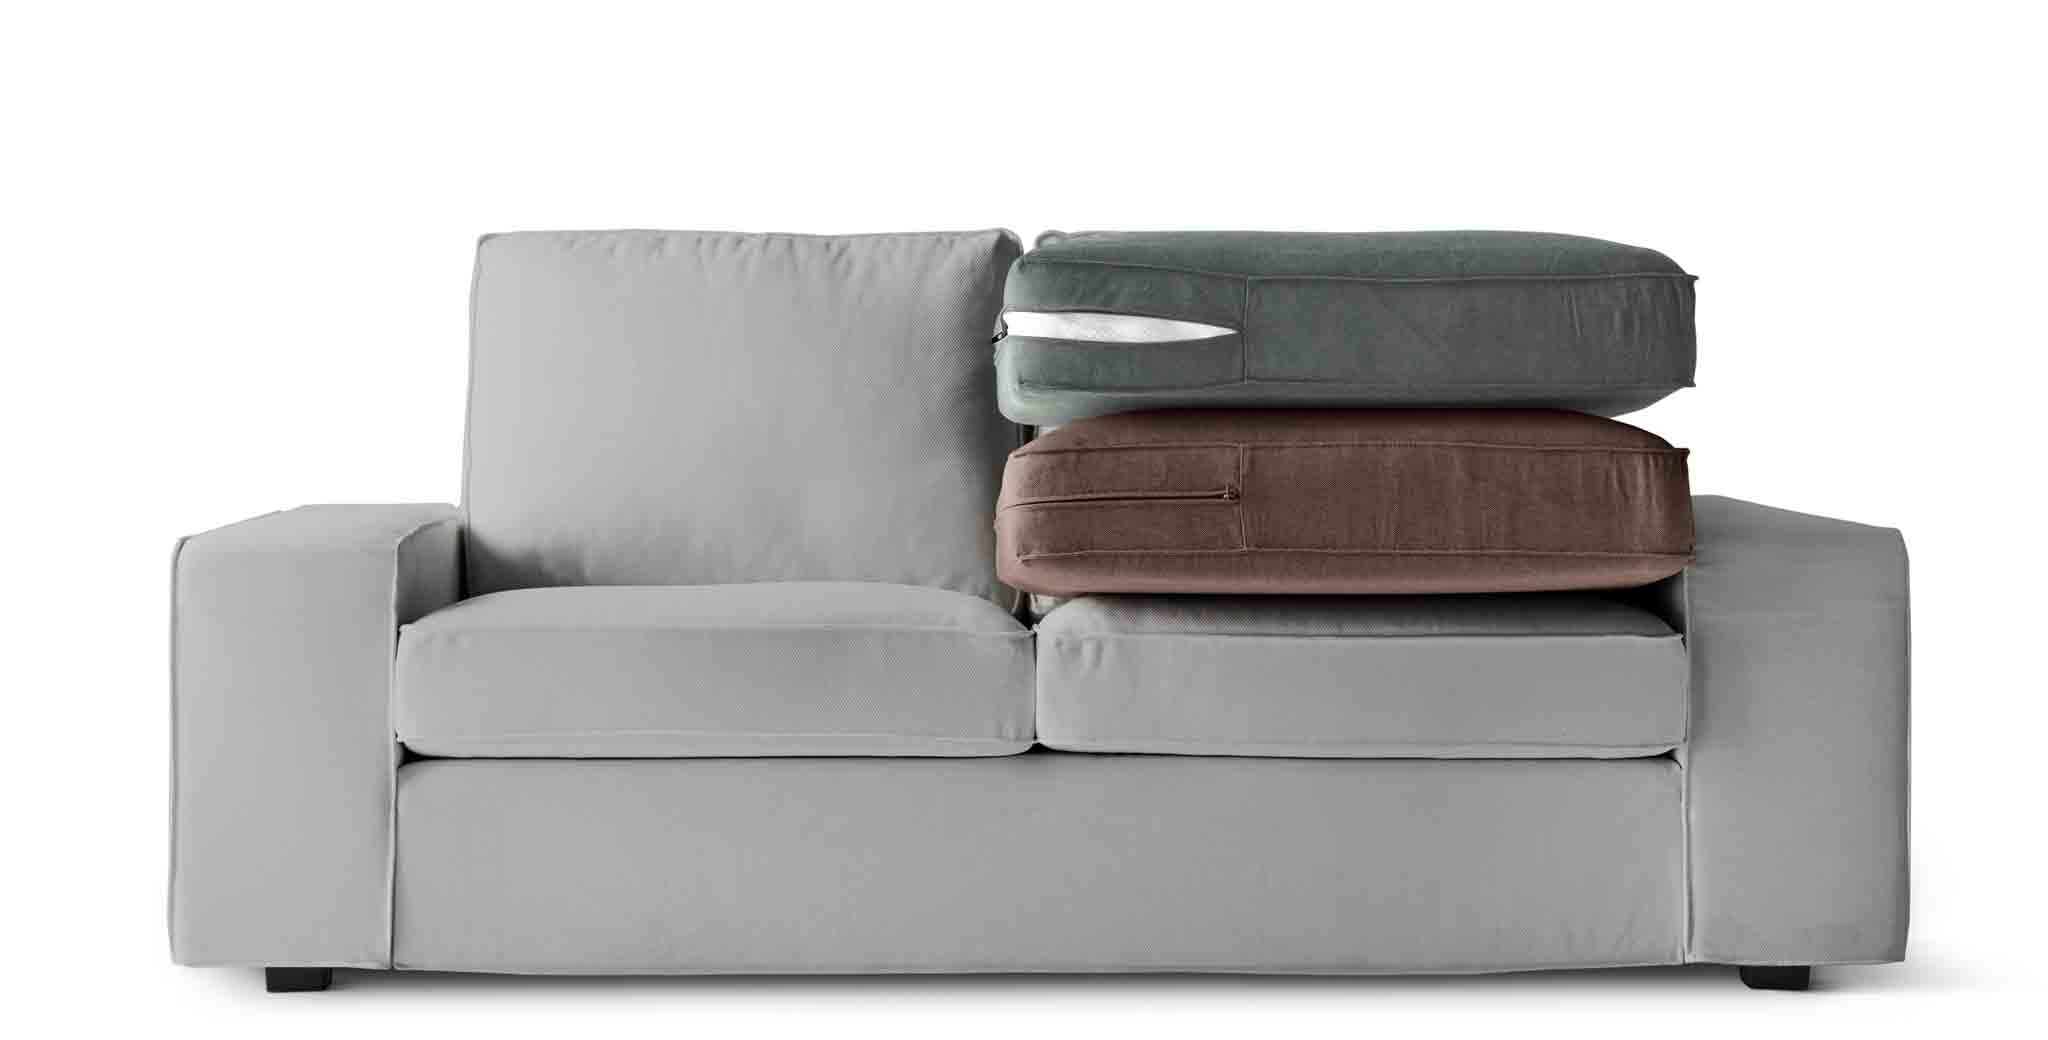 Sofa Covers | Ikea Intended For Sofas With Removable Cover (View 5 of 10)